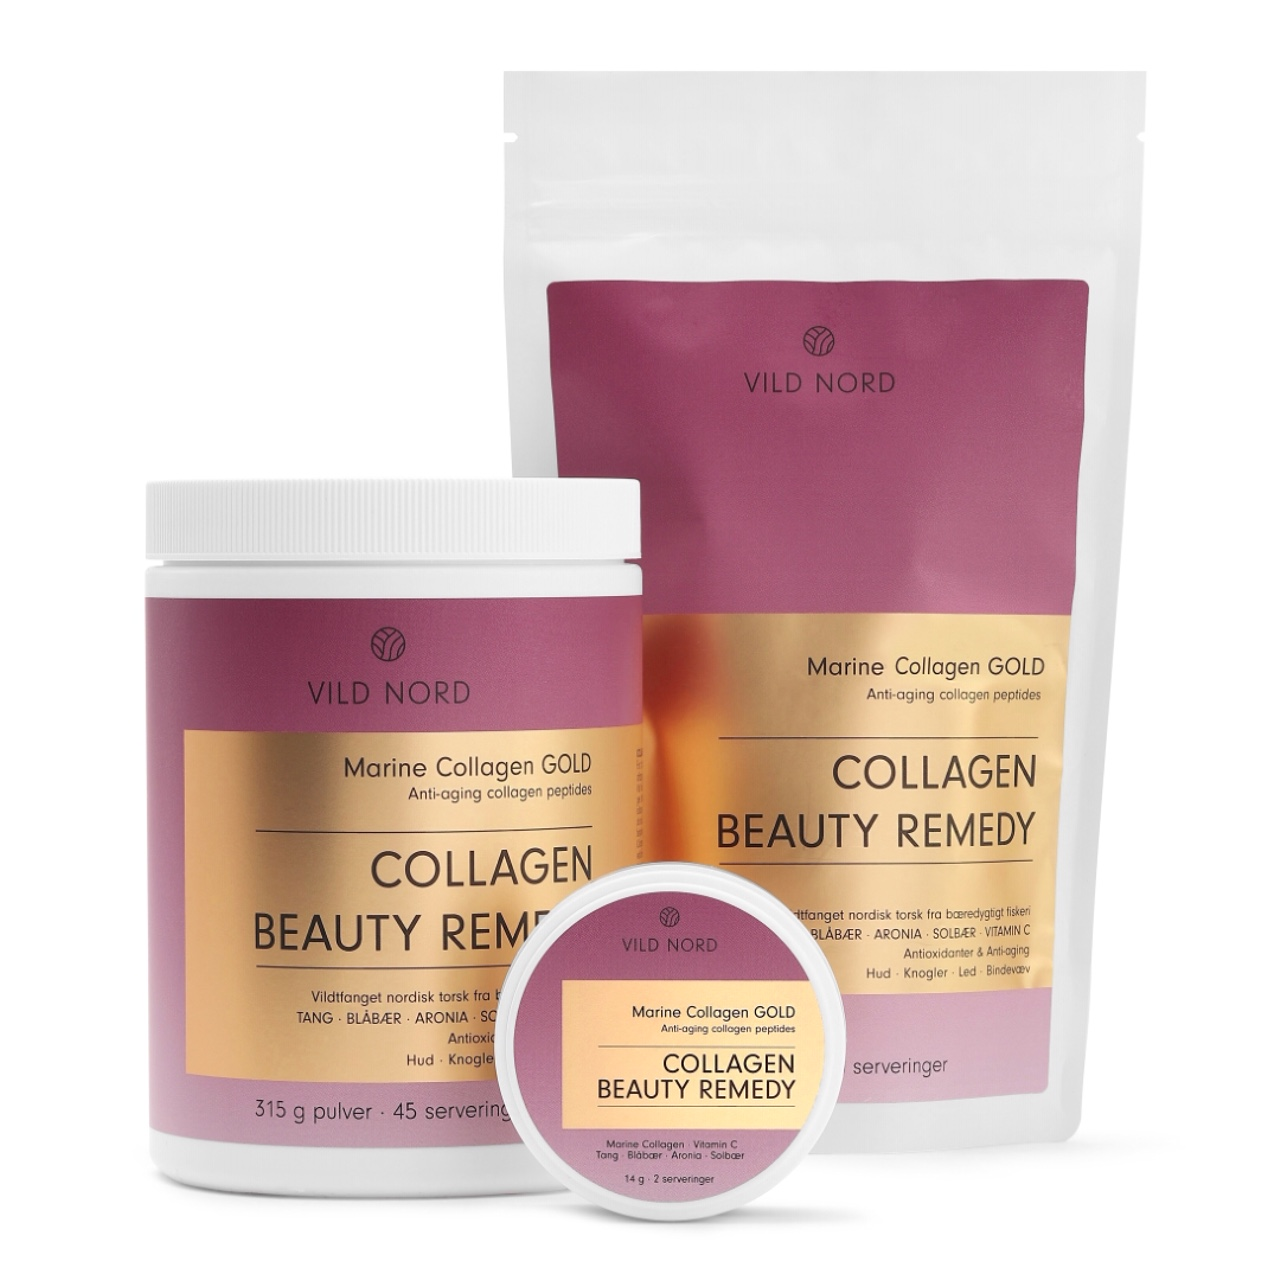 CollagenBeautyRemedy_Familie ny